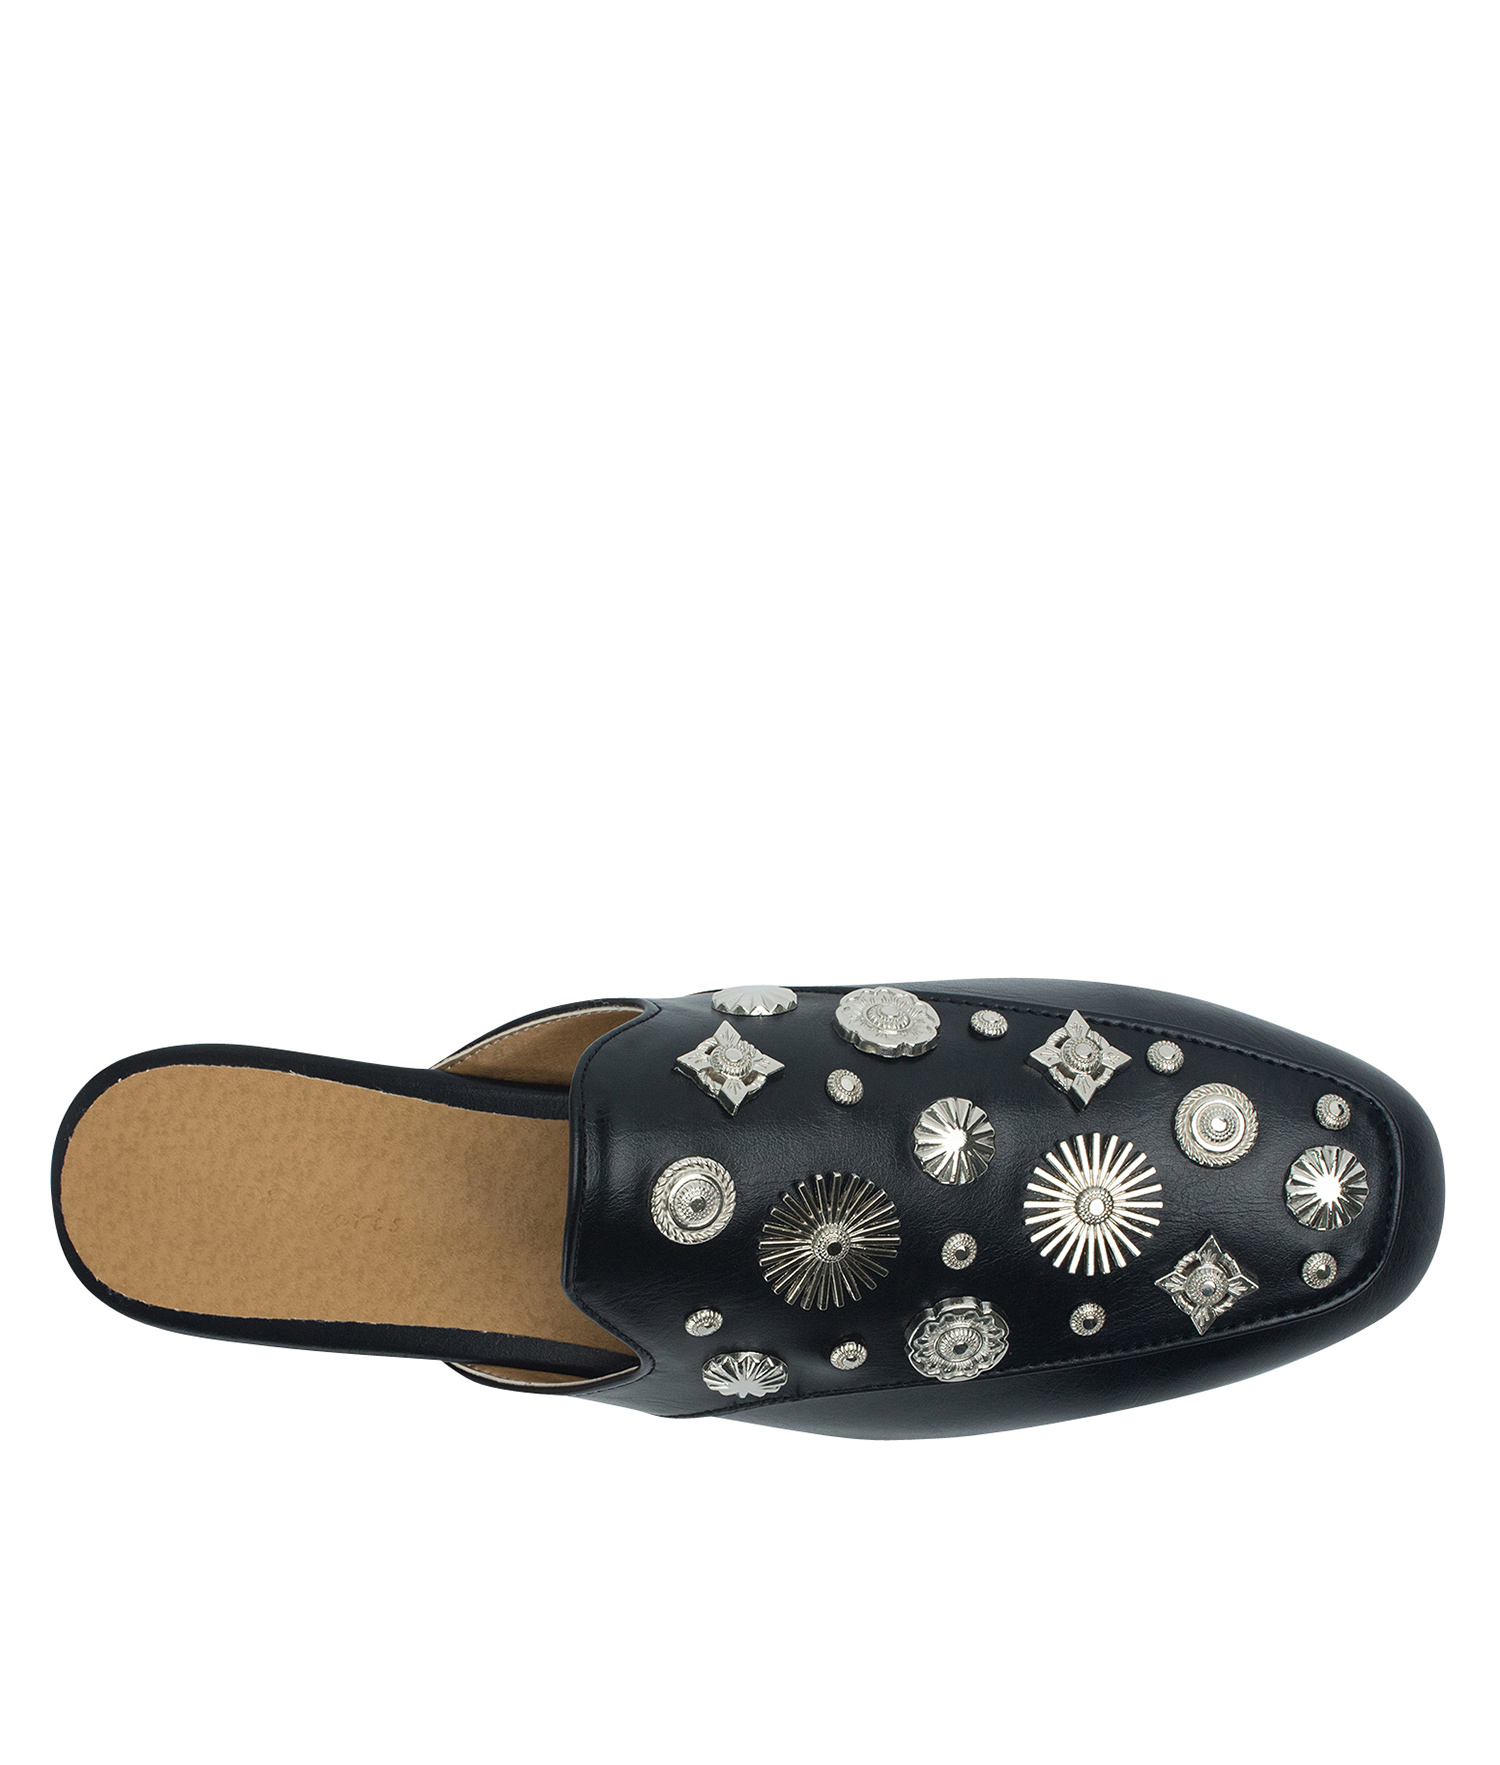 7f3aa324098 AnnaKastle Womens Multi-Shaped Studs Backless Loafer Mules Black